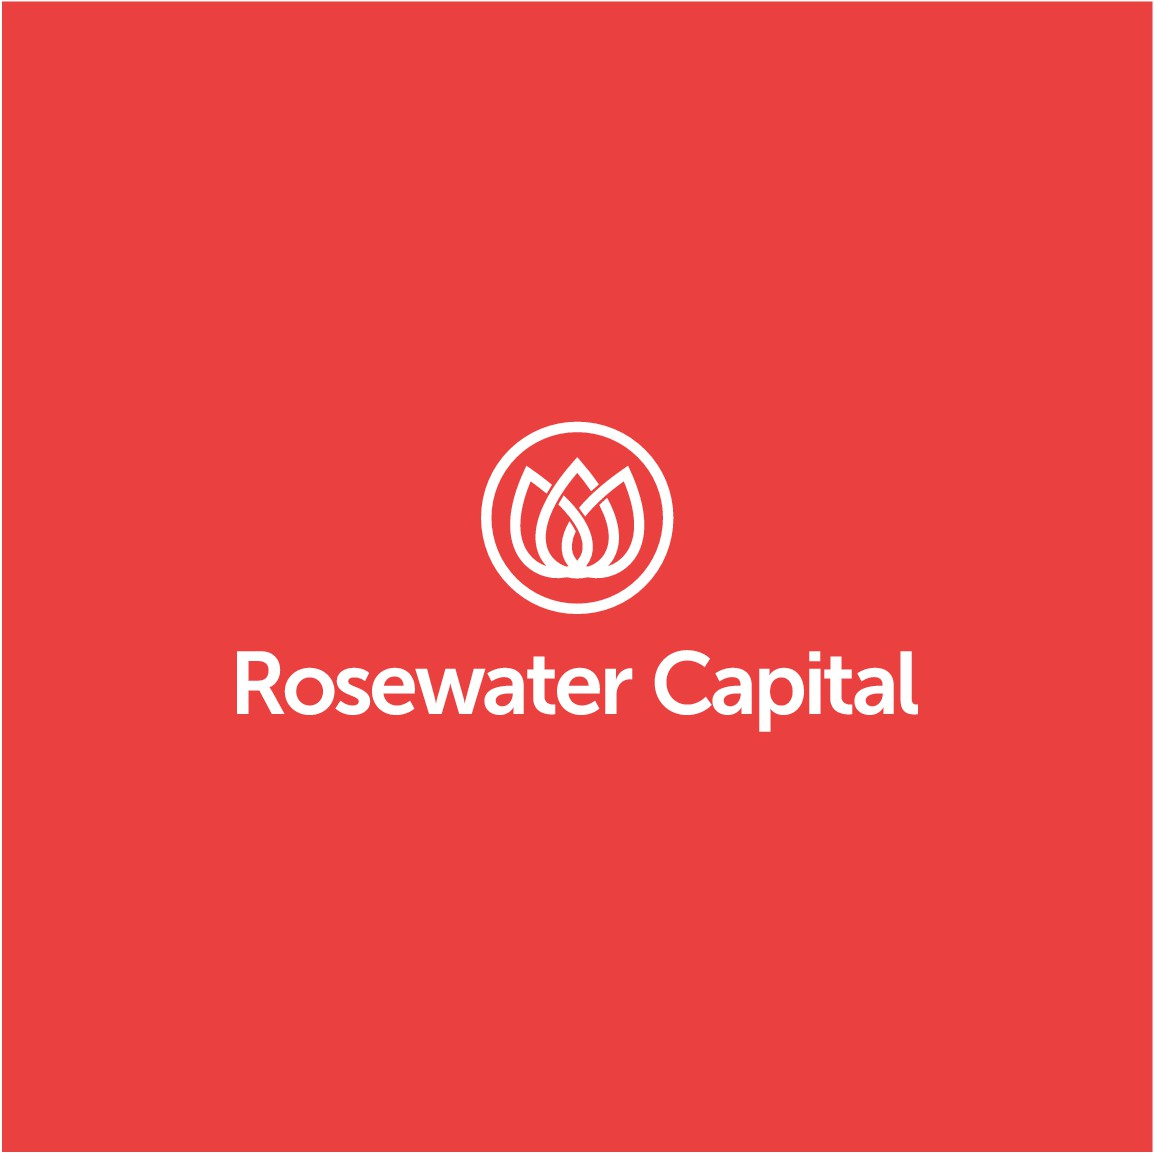 Create a modern/stylish/clean logo for Rosewater Capital